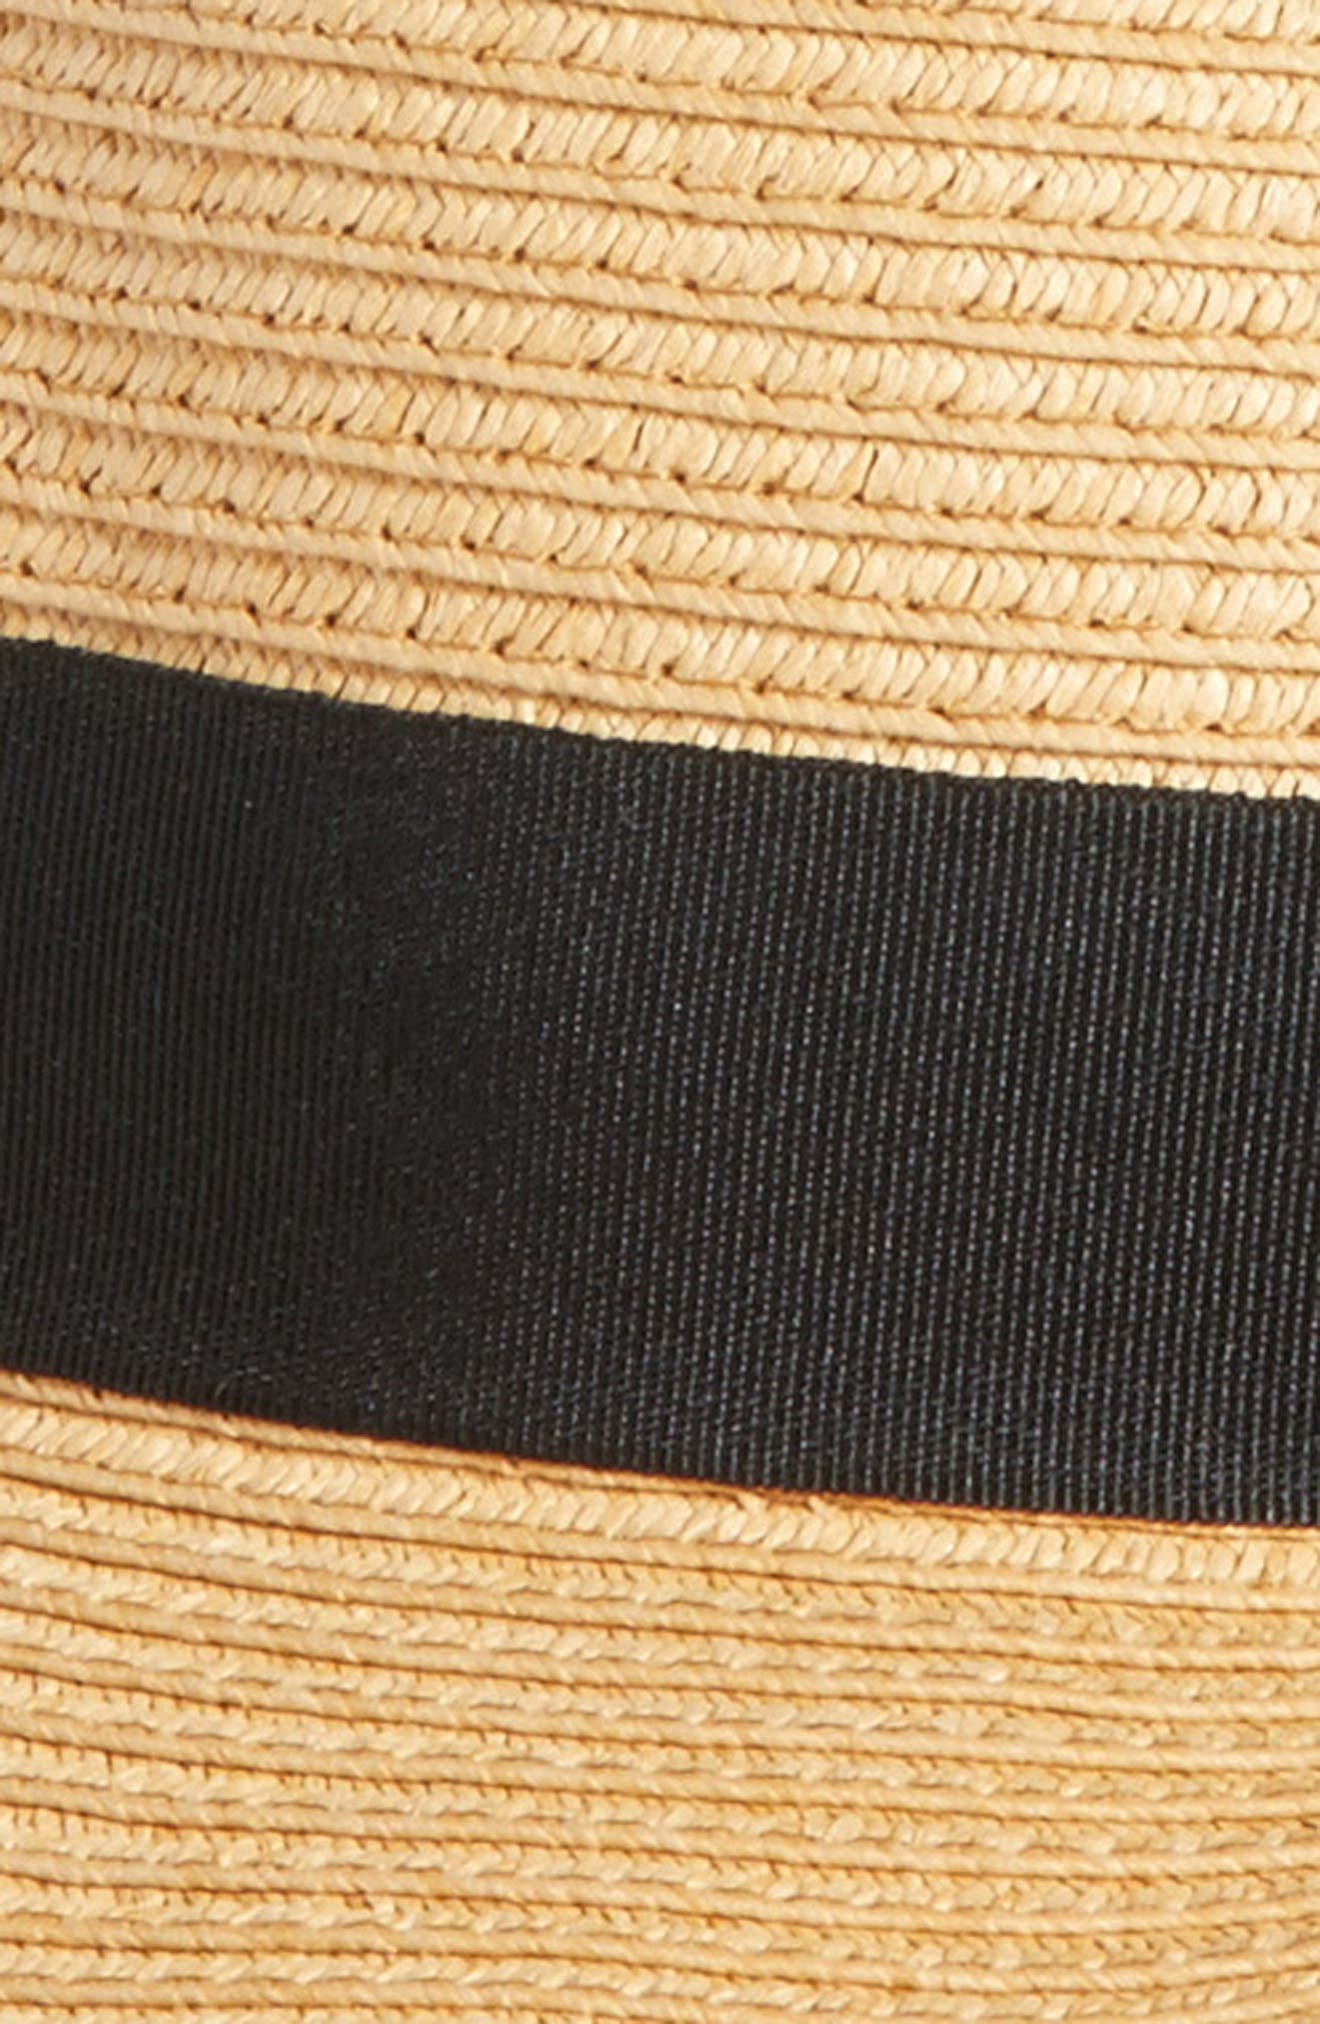 Straw Boater Hat,                             Alternate thumbnail 2, color,                             238